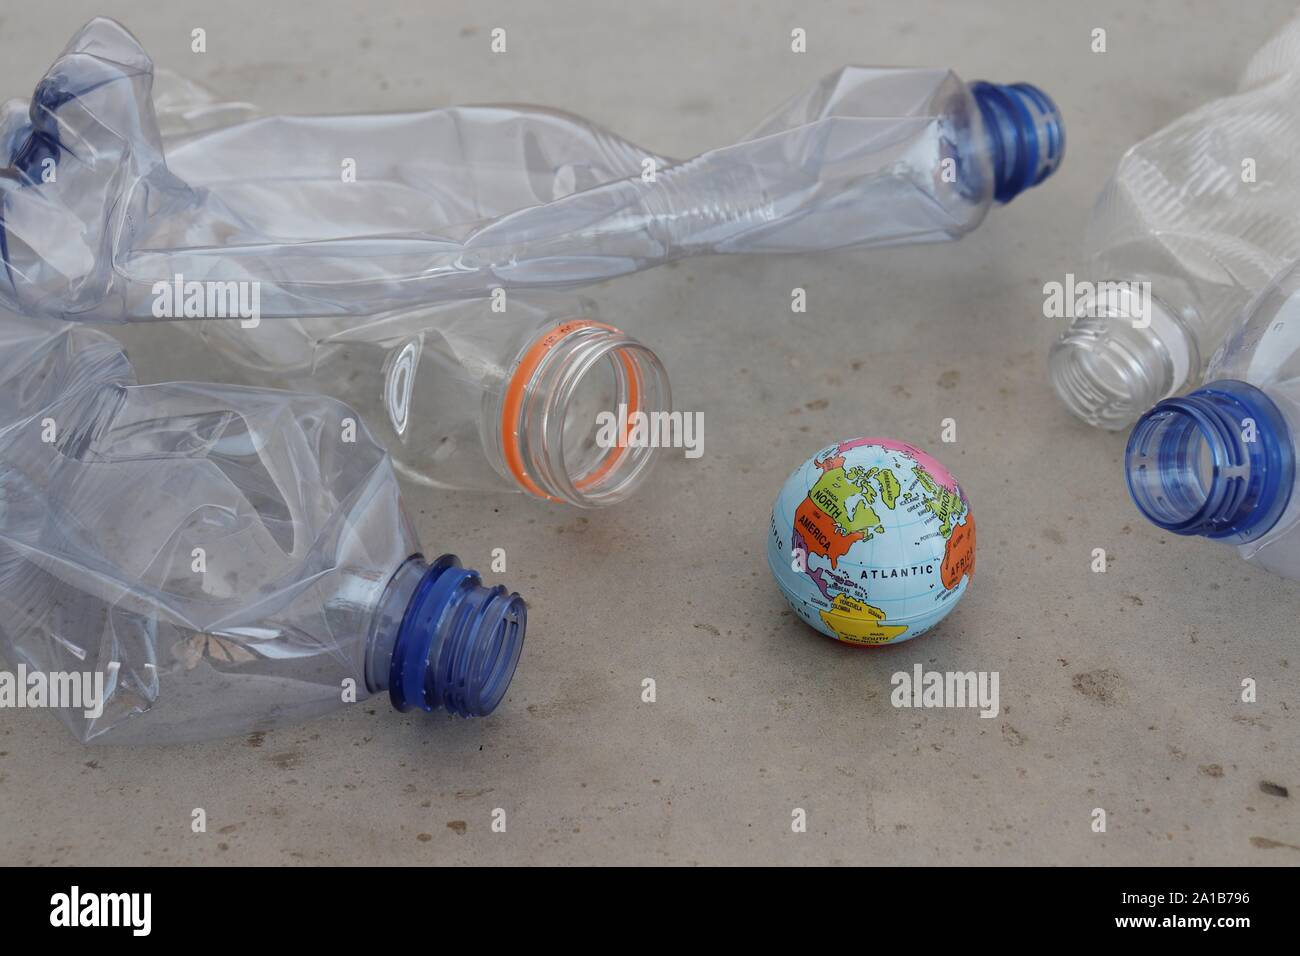 Pet plastic bottles pointing at planet earth globe on grey surface. Showing plastic pollution, recycling and zero waste concepts. Stock Photo